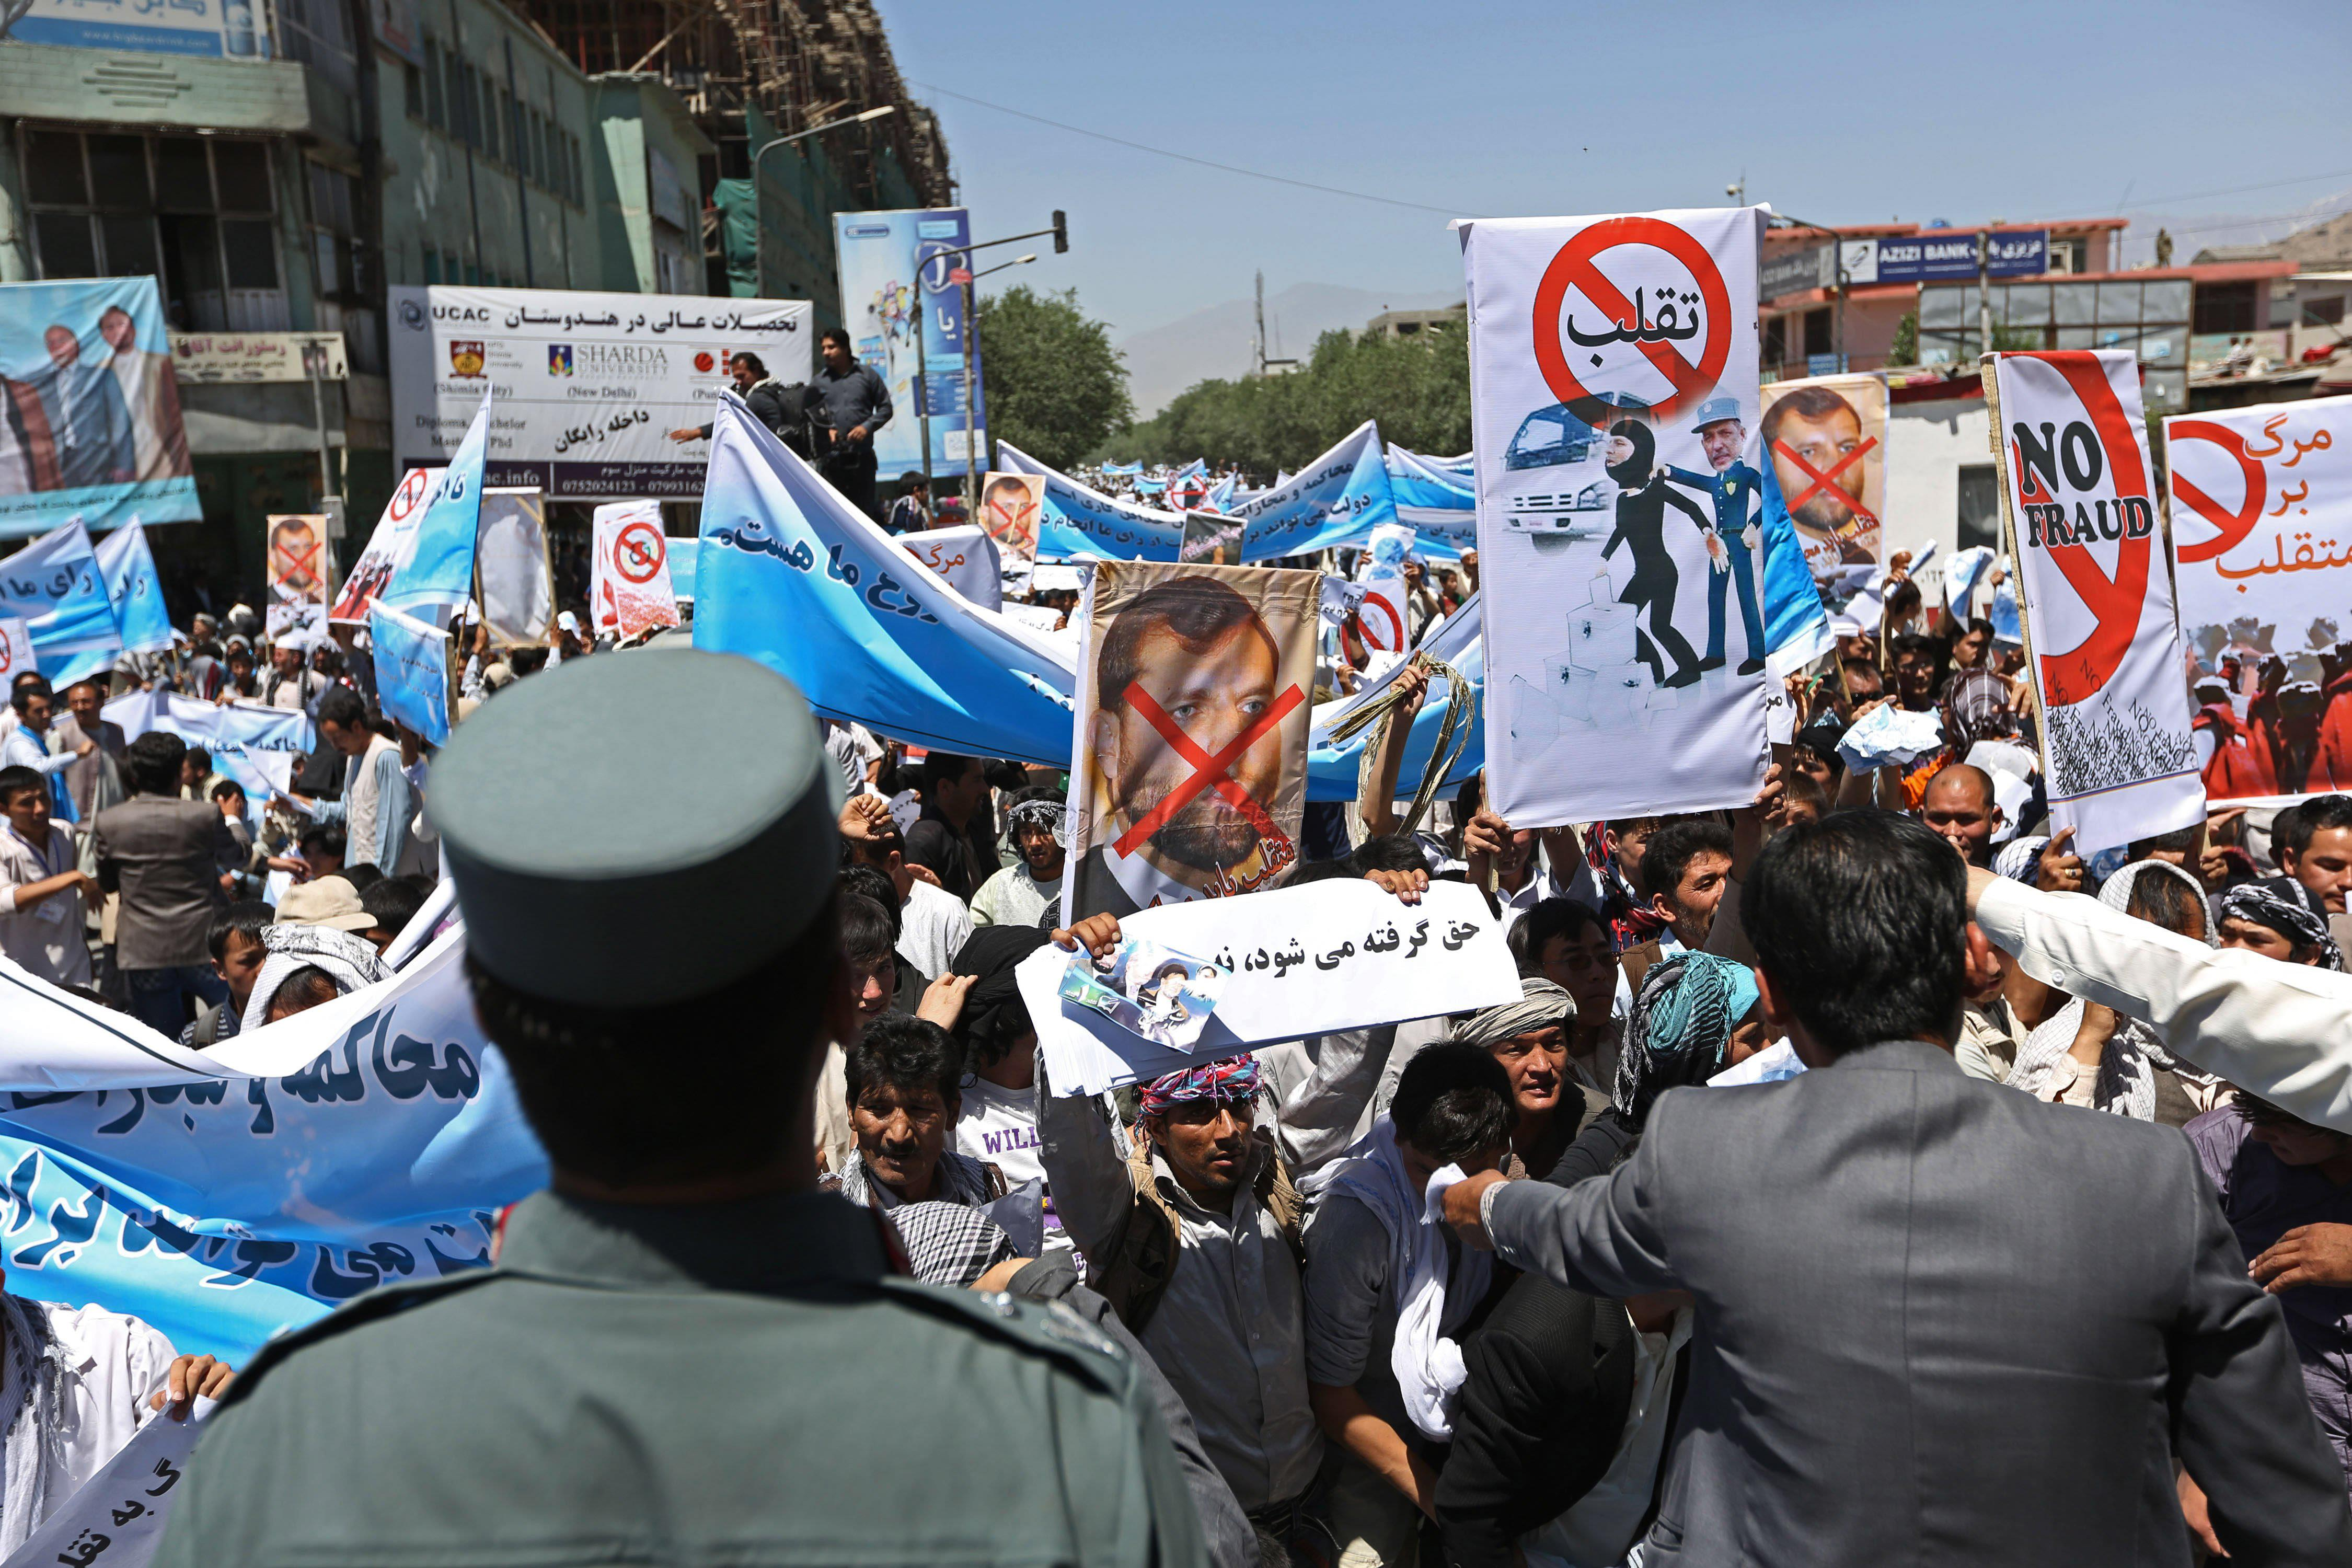 Image: Supporters of presidential candidate Abdullah Abdullah shouts slogans during a protest in Kabul, Afghanistan, on June 21.